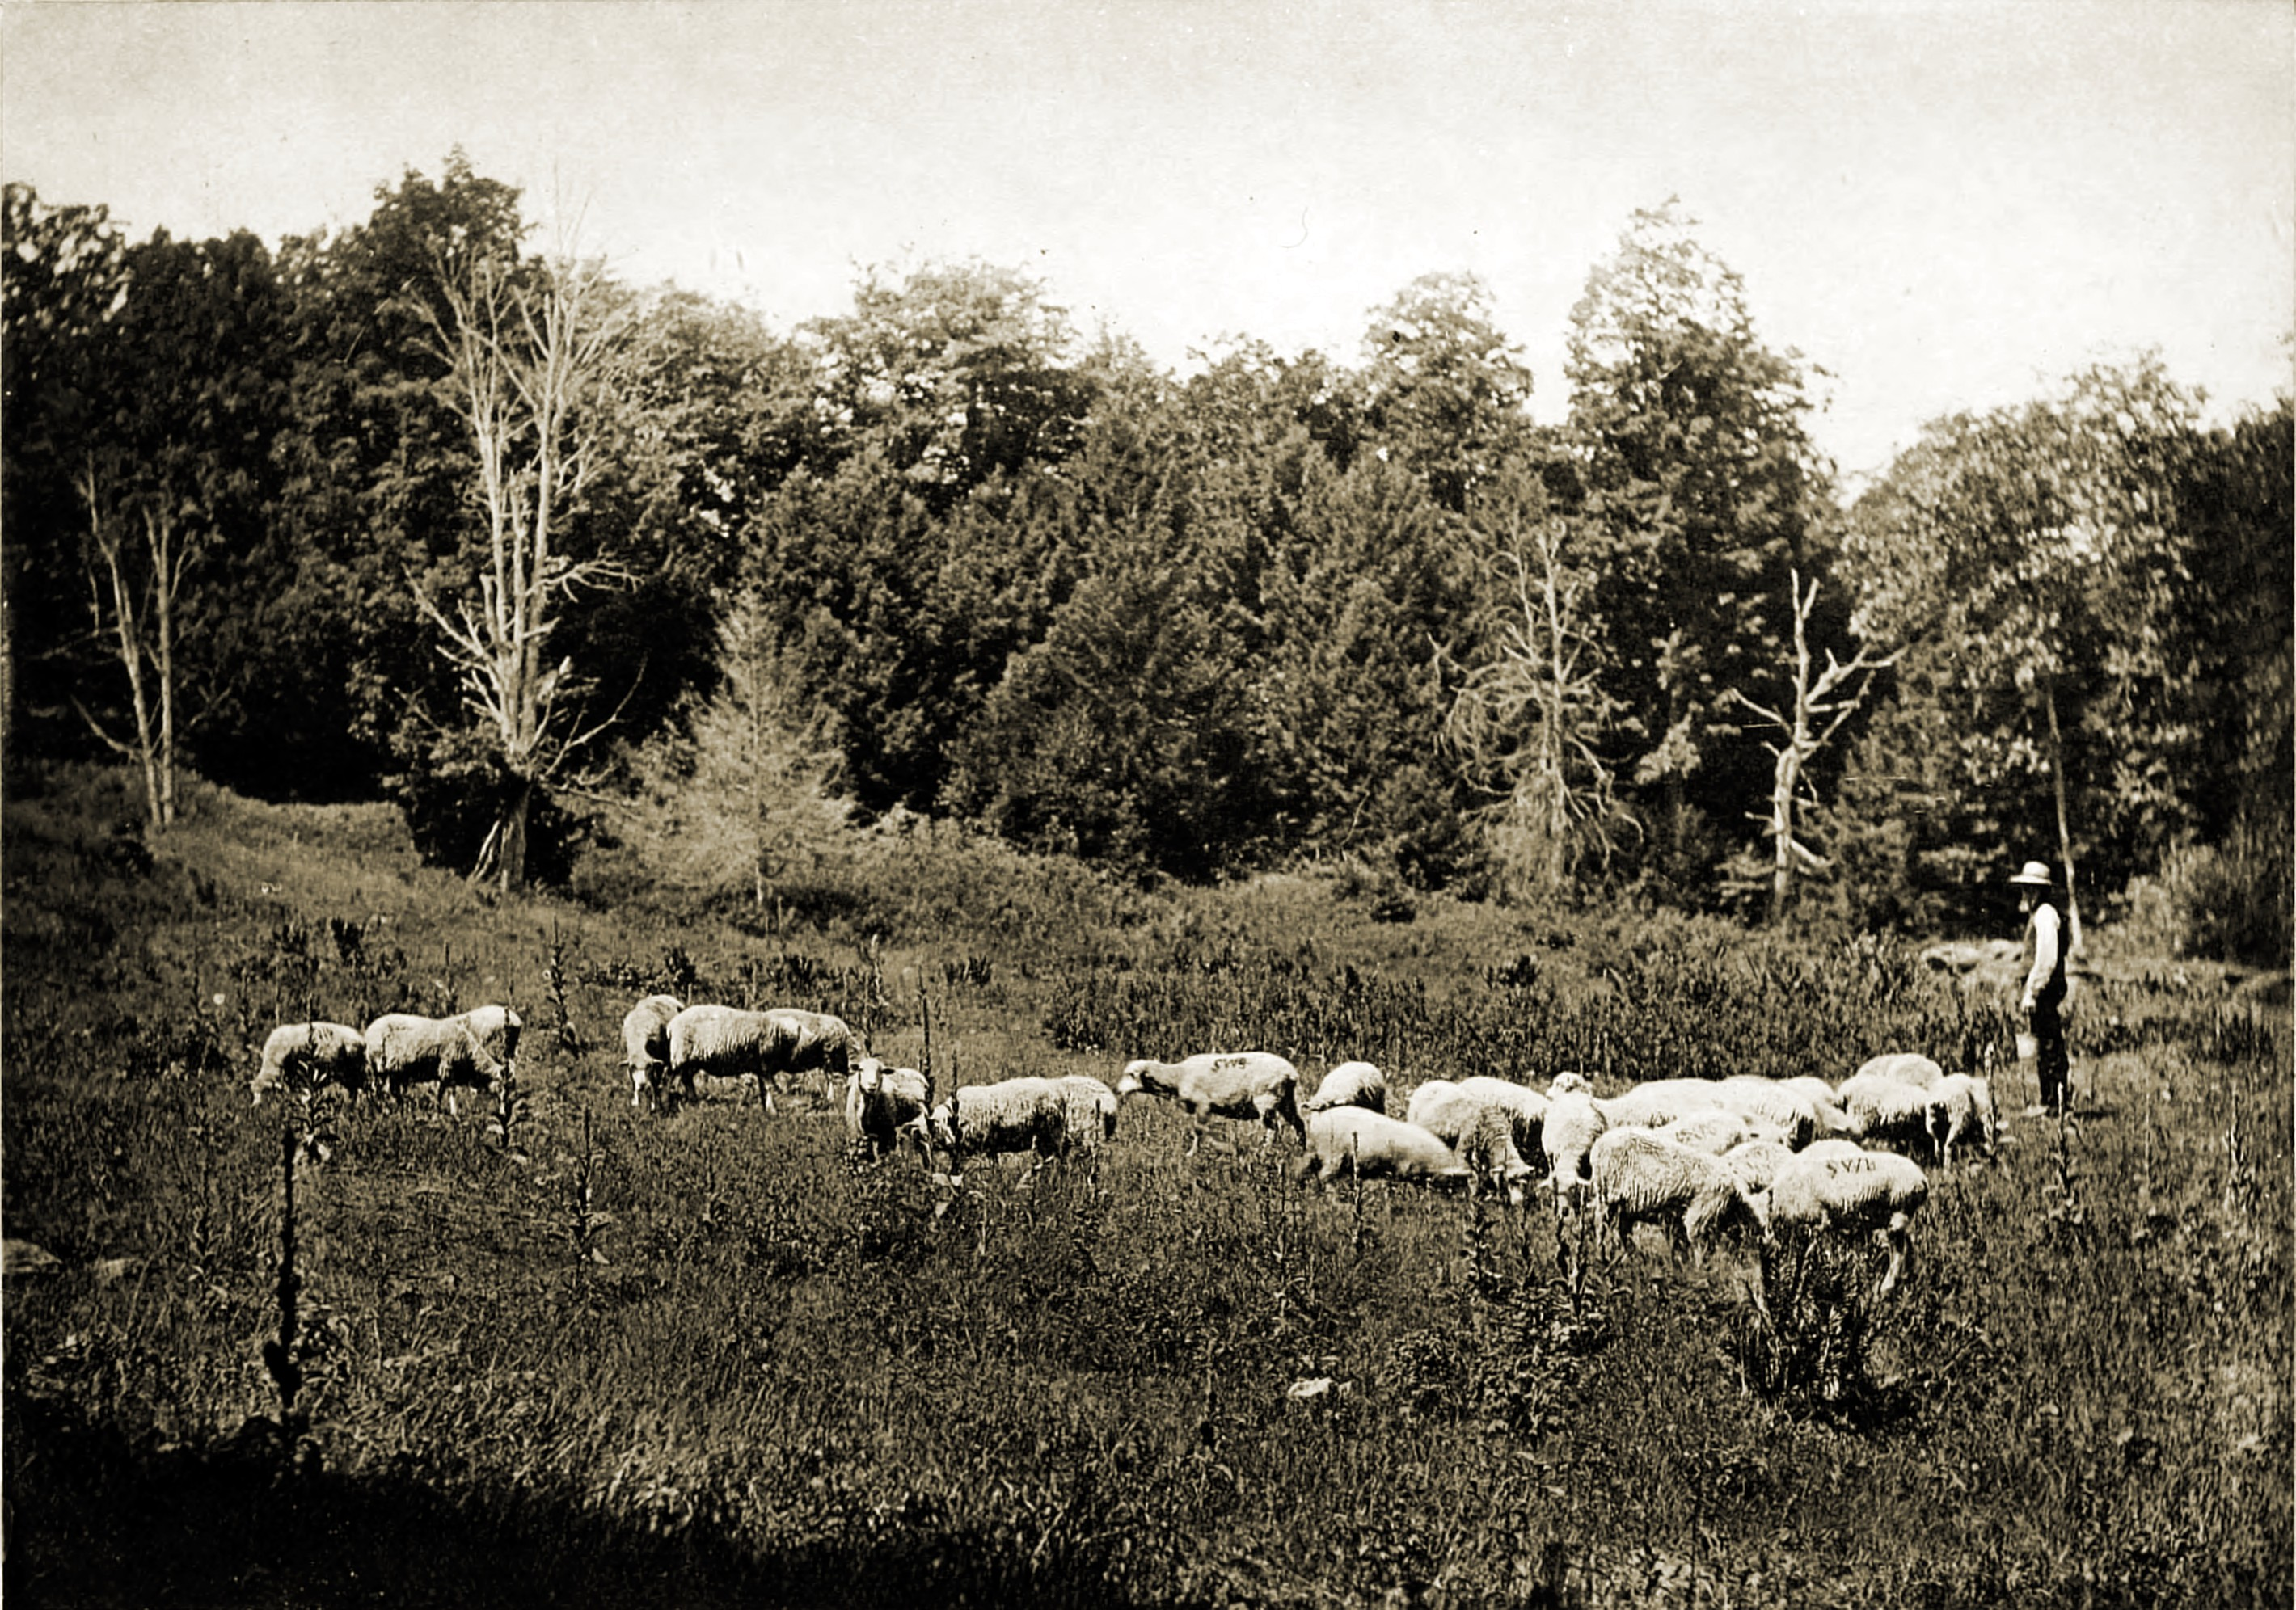 Salting the Sheep by Charles H. Currier 1892